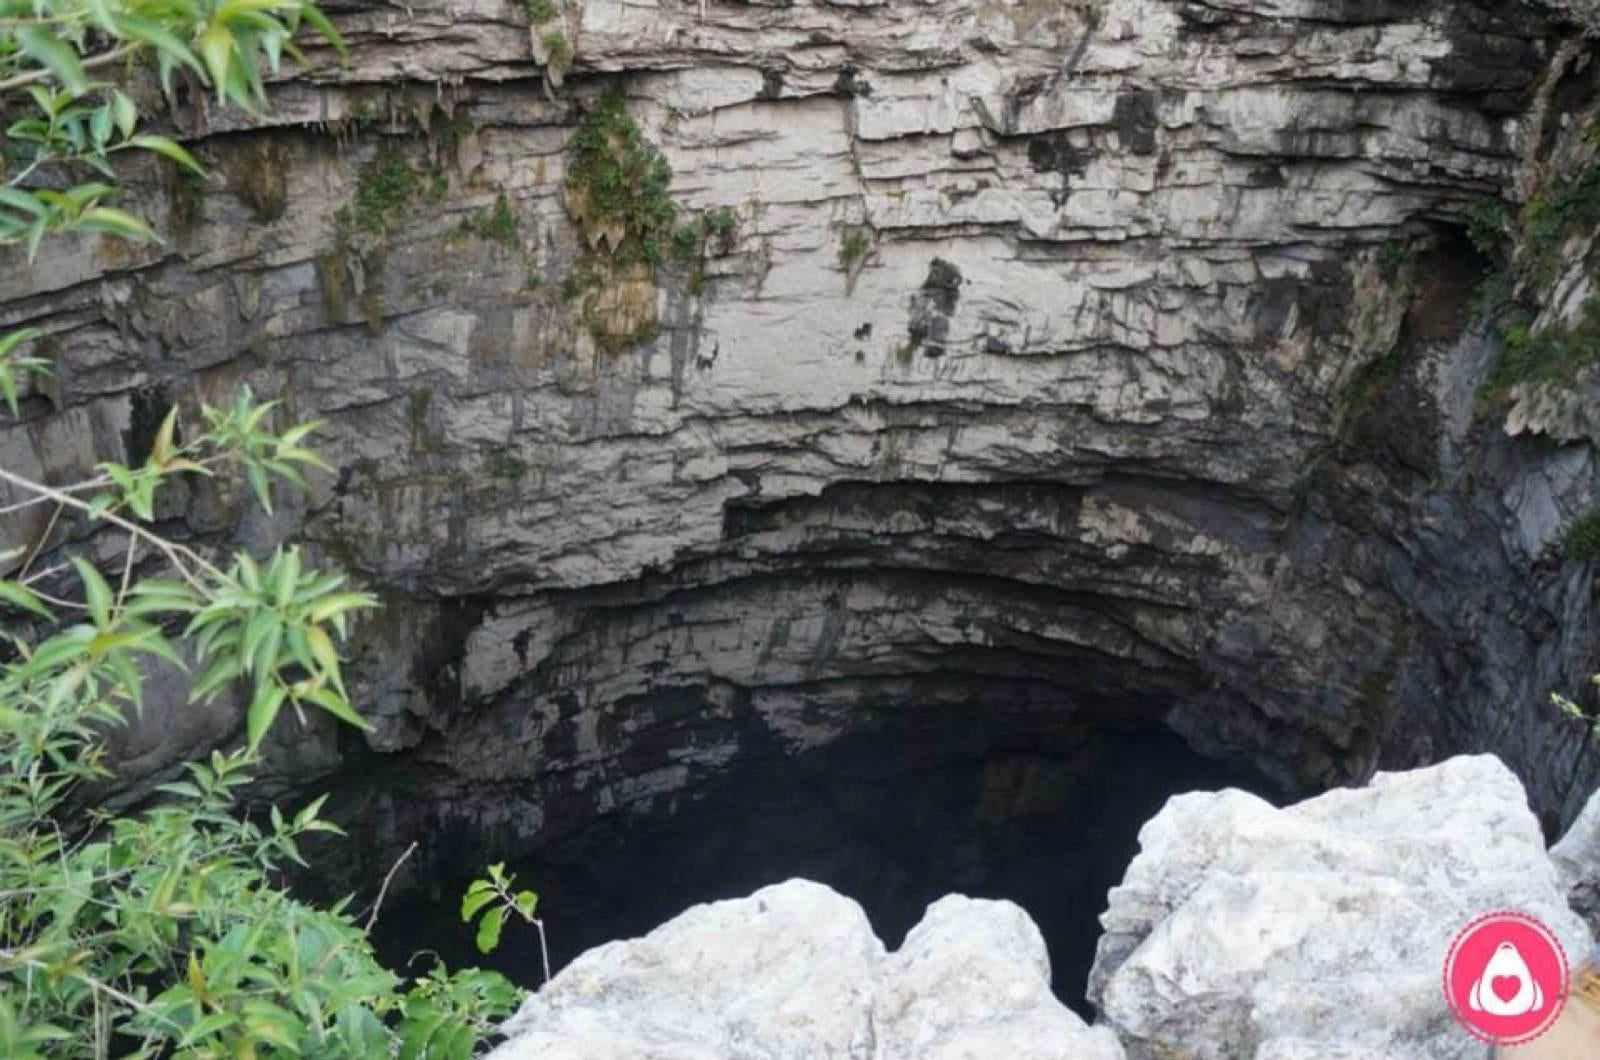 Cave of Swallows